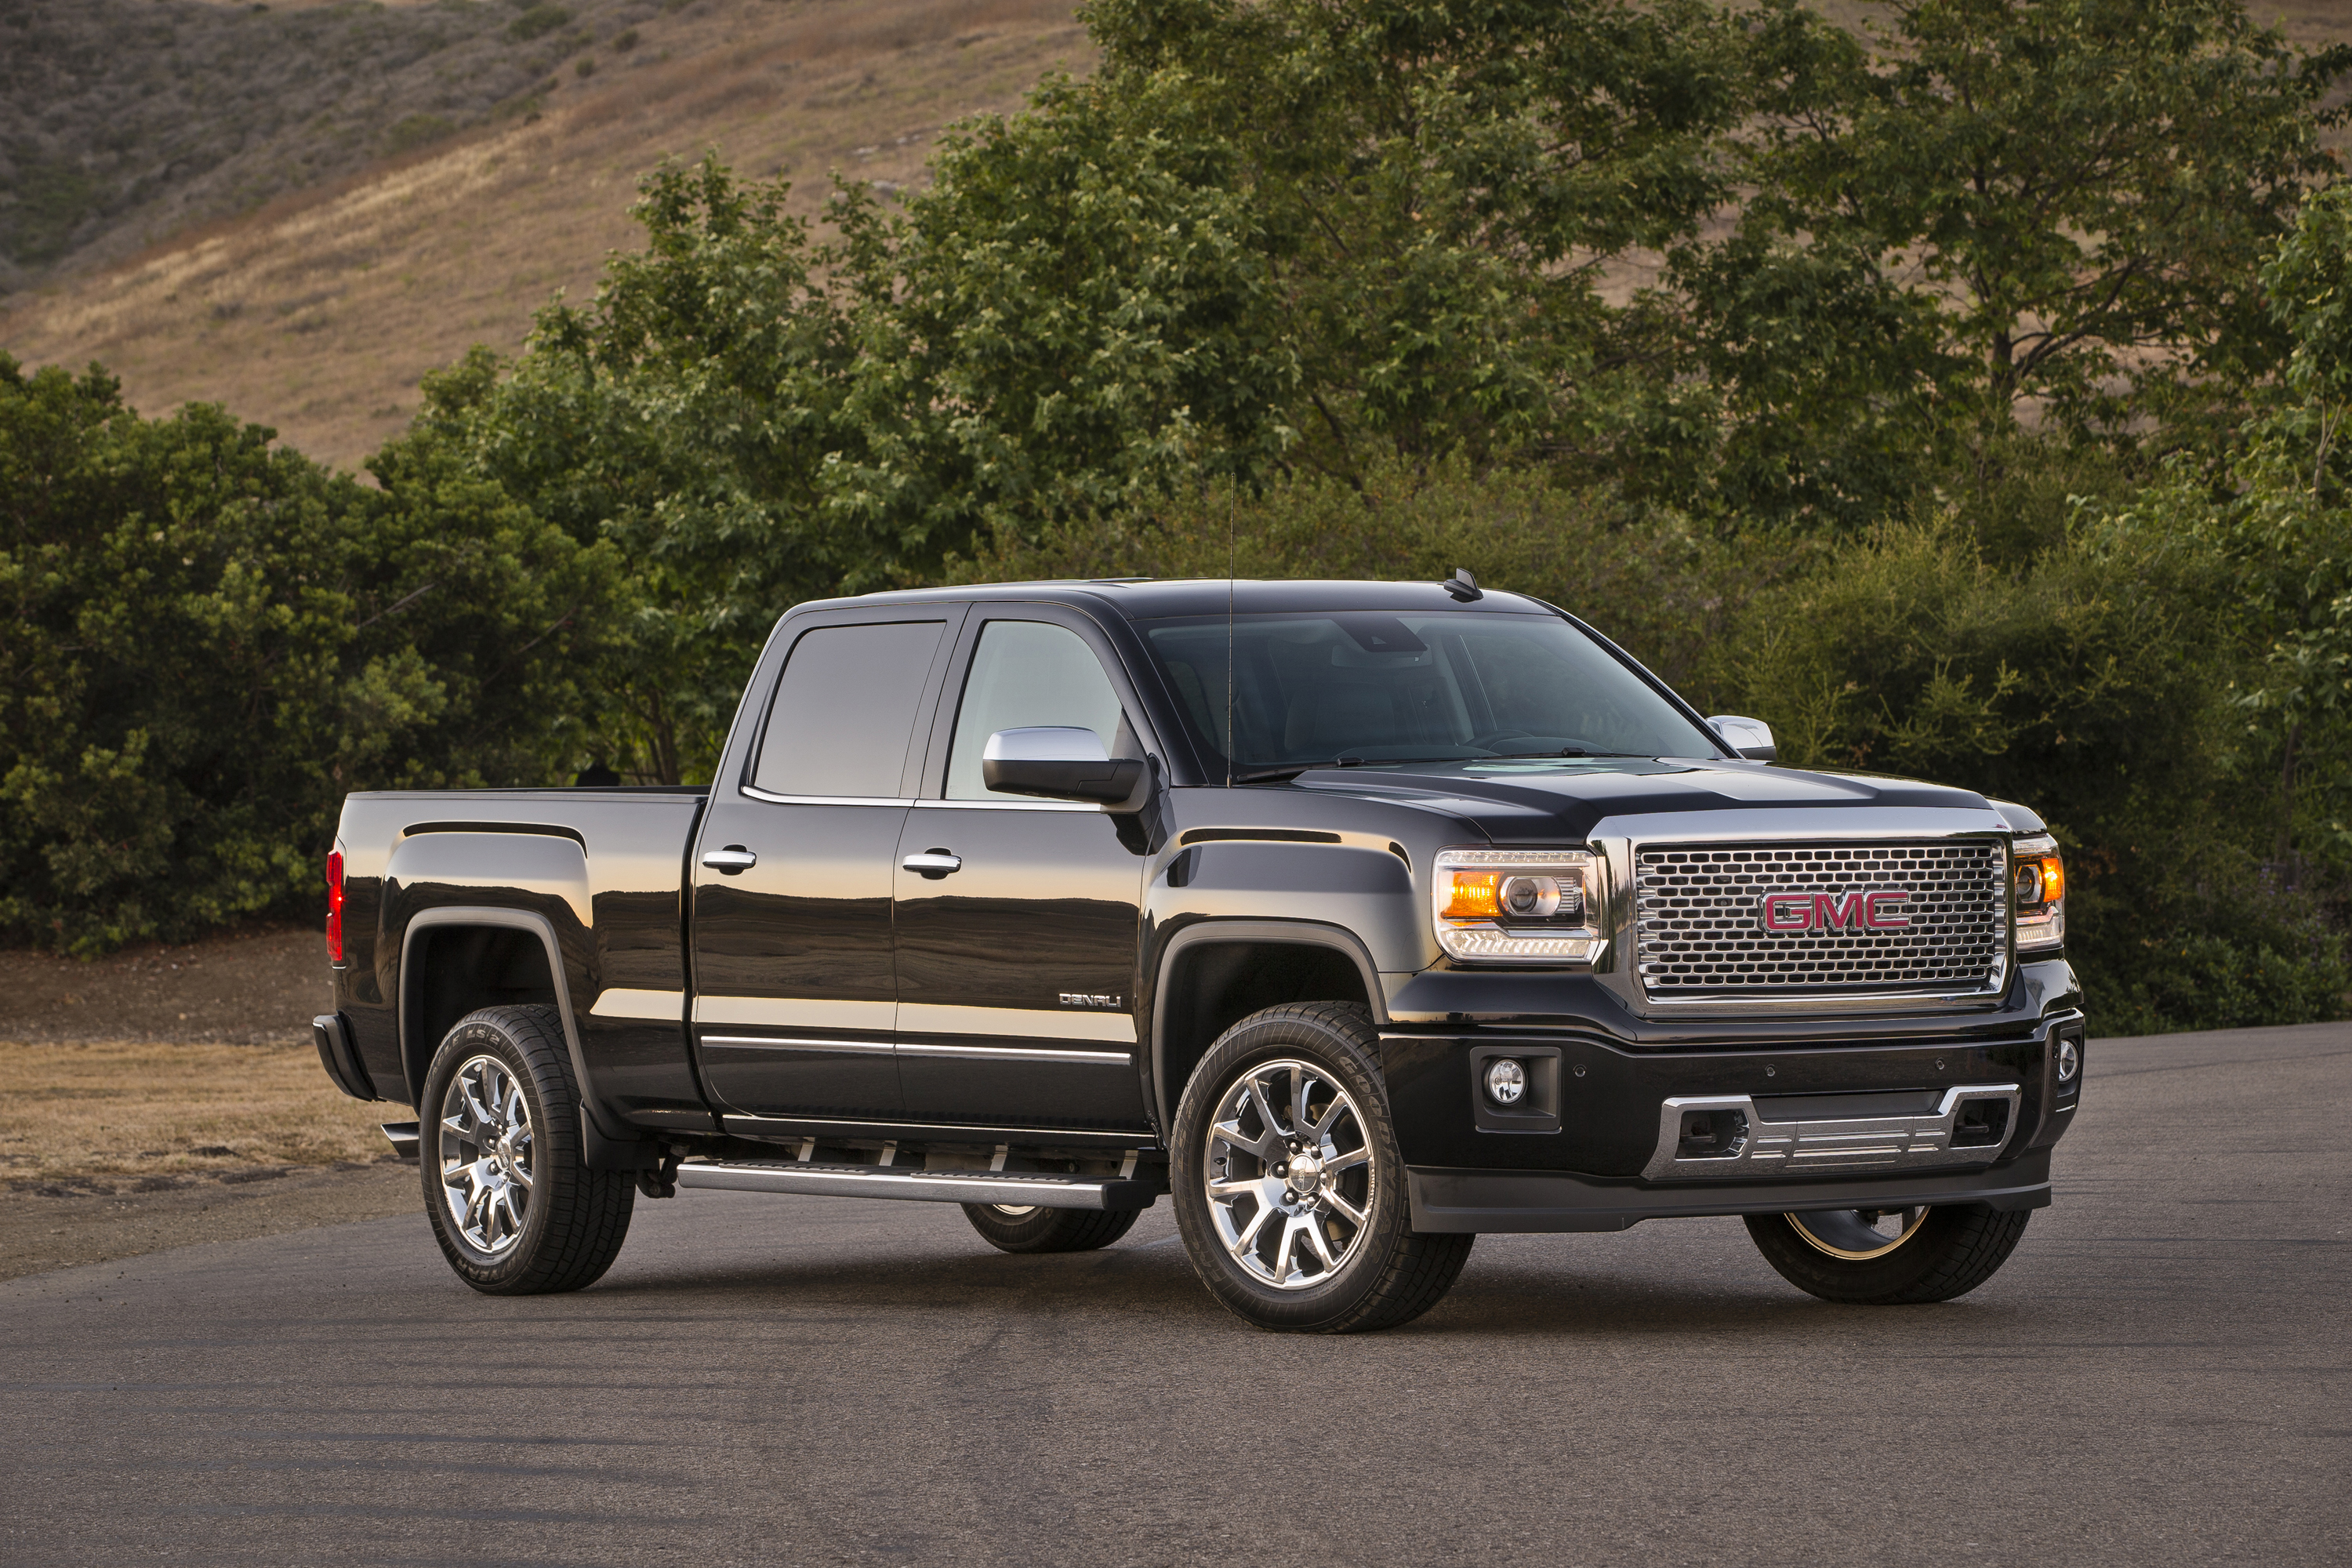 nothing gmc kibbetech wants denali the next like truck a on who built diesel n starting instagram with chase